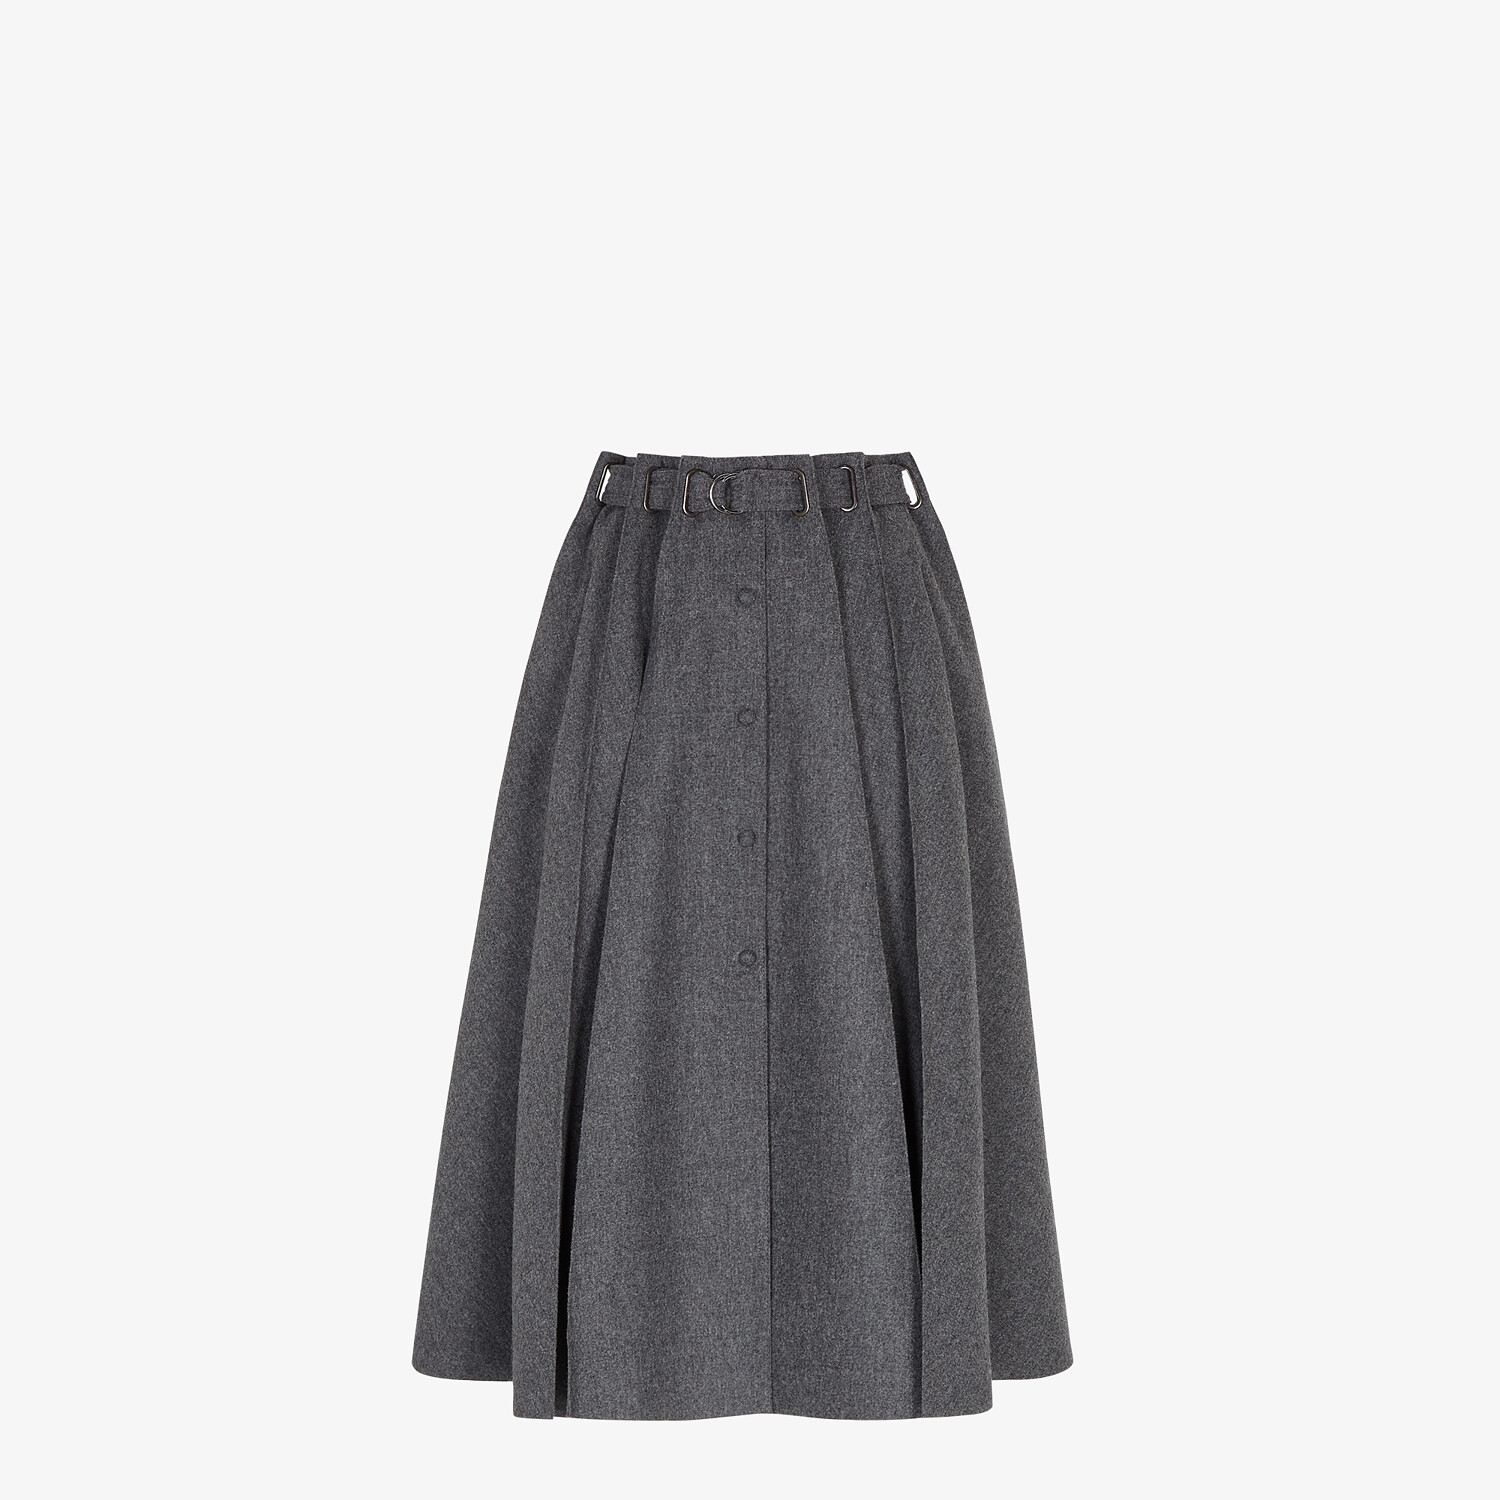 FENDI SKIRT - Gray cashmere and flannel skirt - view 1 detail